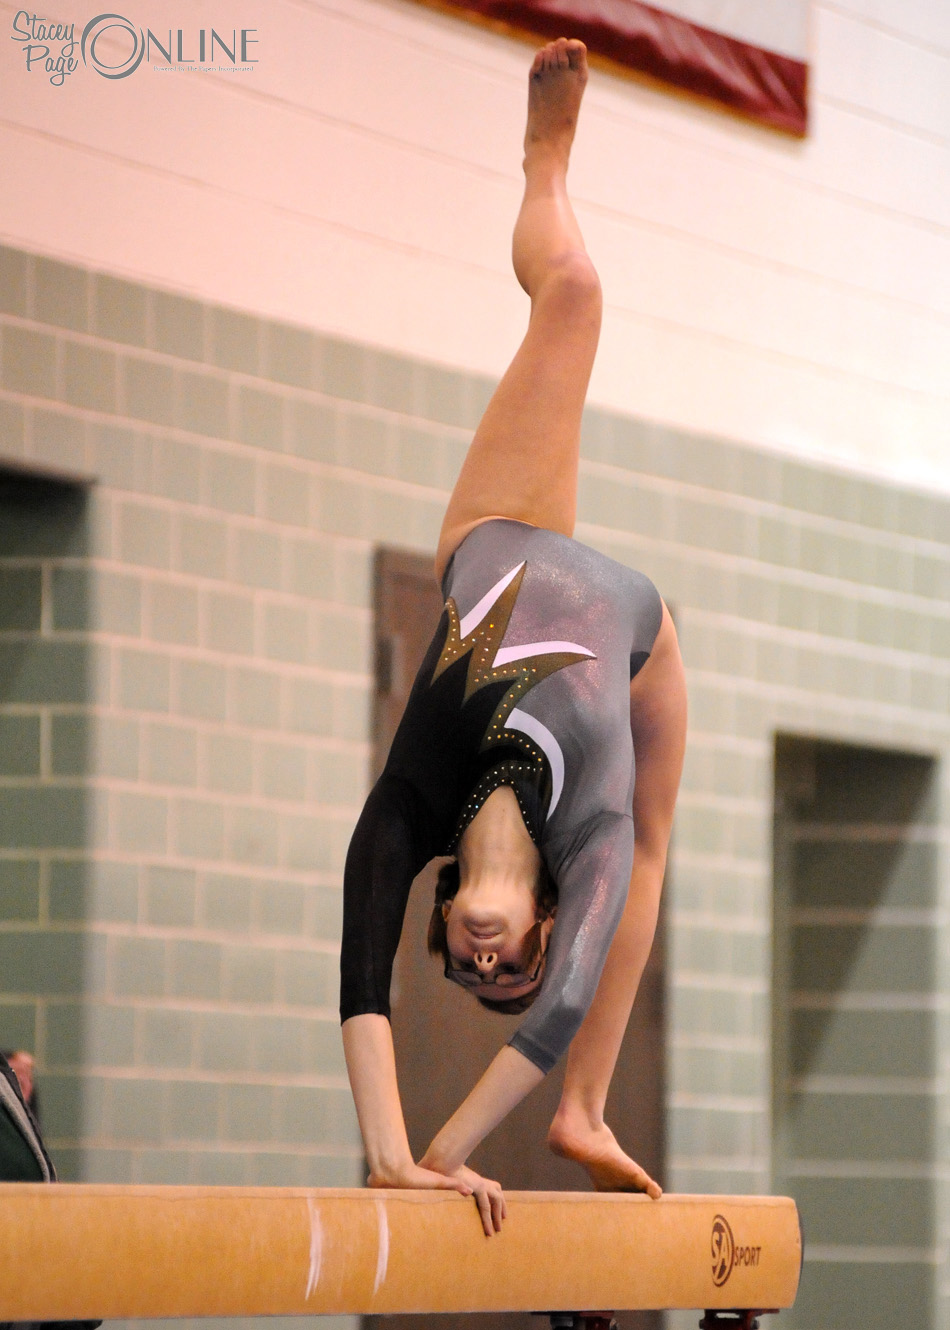 Wawasee's Ashleigh Frecker was one of several sent to varsity duty against West Noble, including this routine on beam. (Photos by Mike Deak)